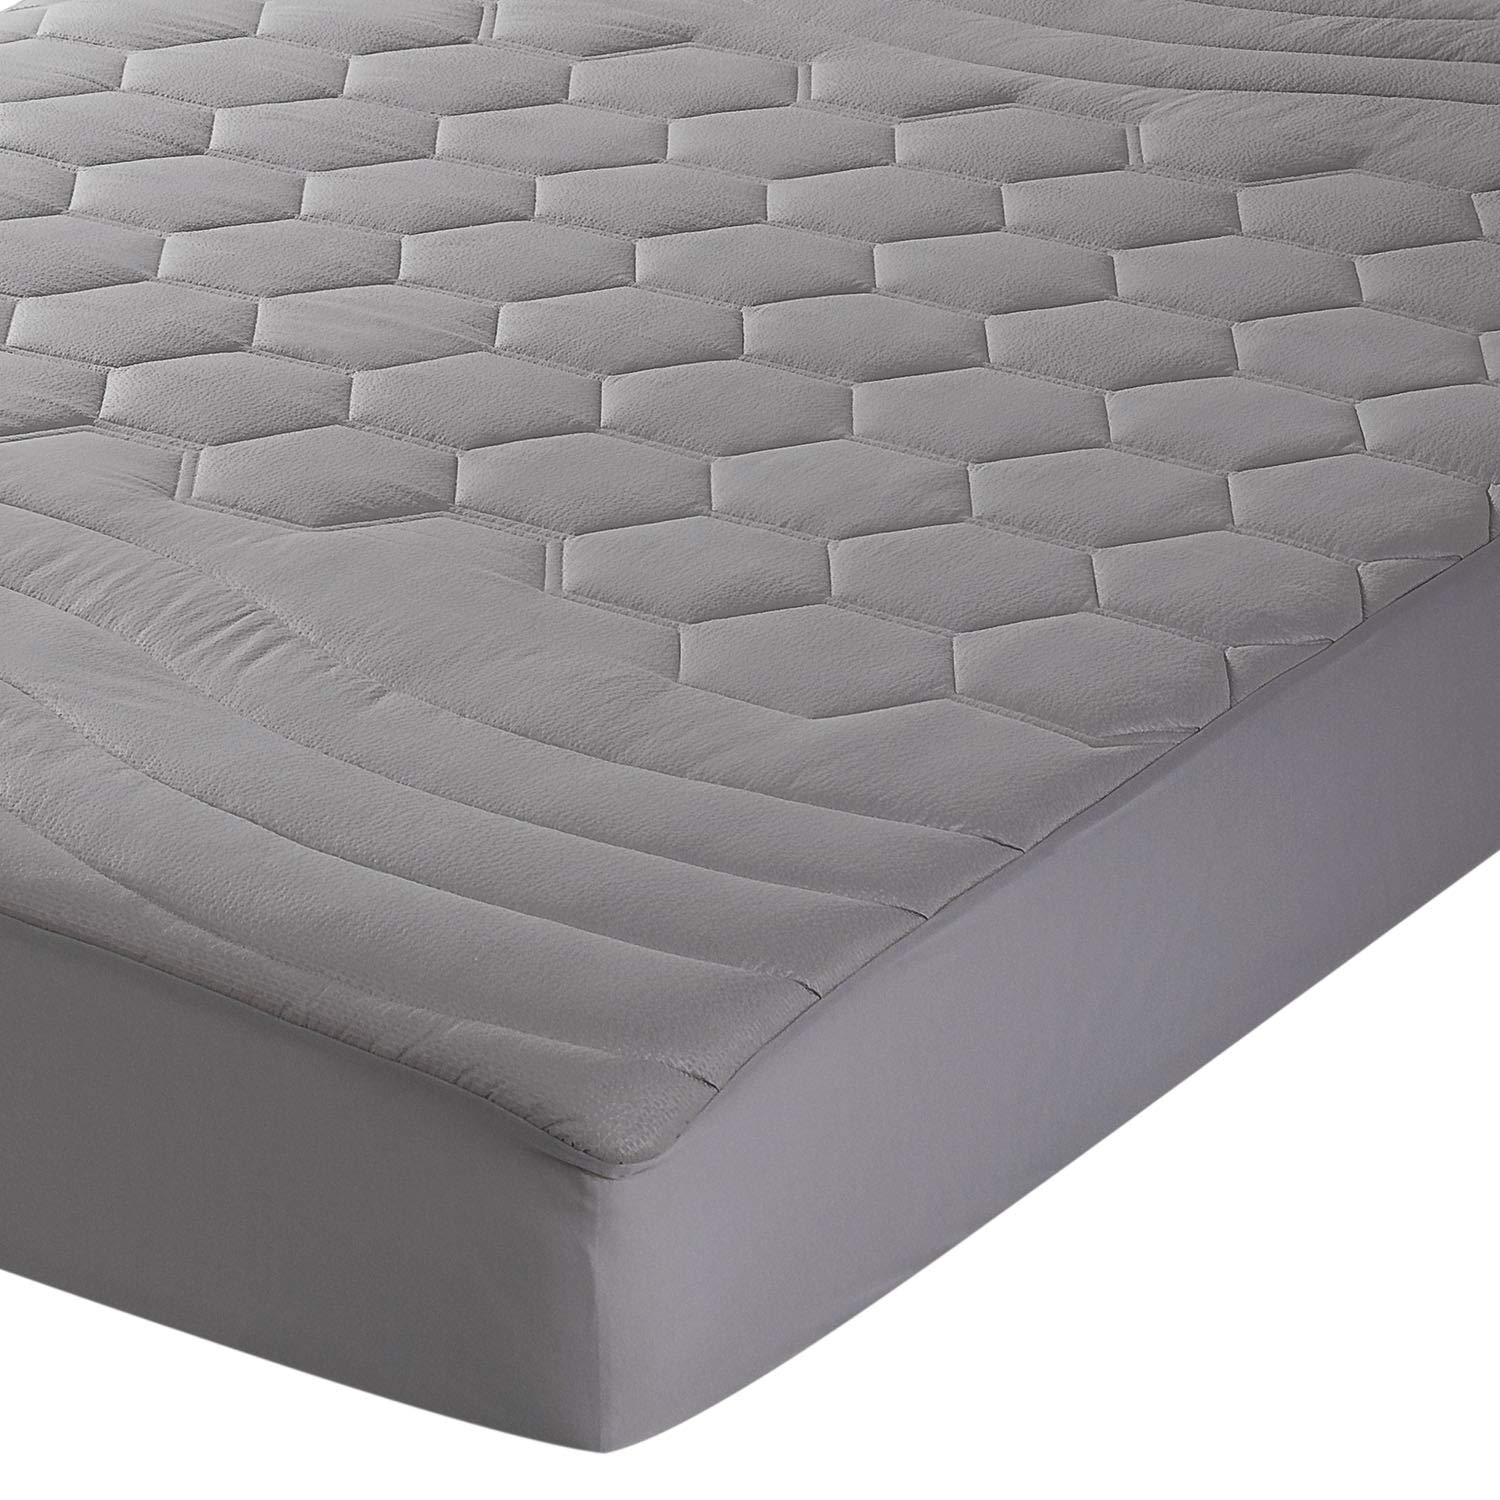 Bedsure Quilted Mattress Pad Twin XL/Twin Extra Long Size Grey Fitted Sheet Mattress Cover, Super Soft - Hypoallergenic, Luxury Mattress Protector Stretches up to 18 Inches Deep